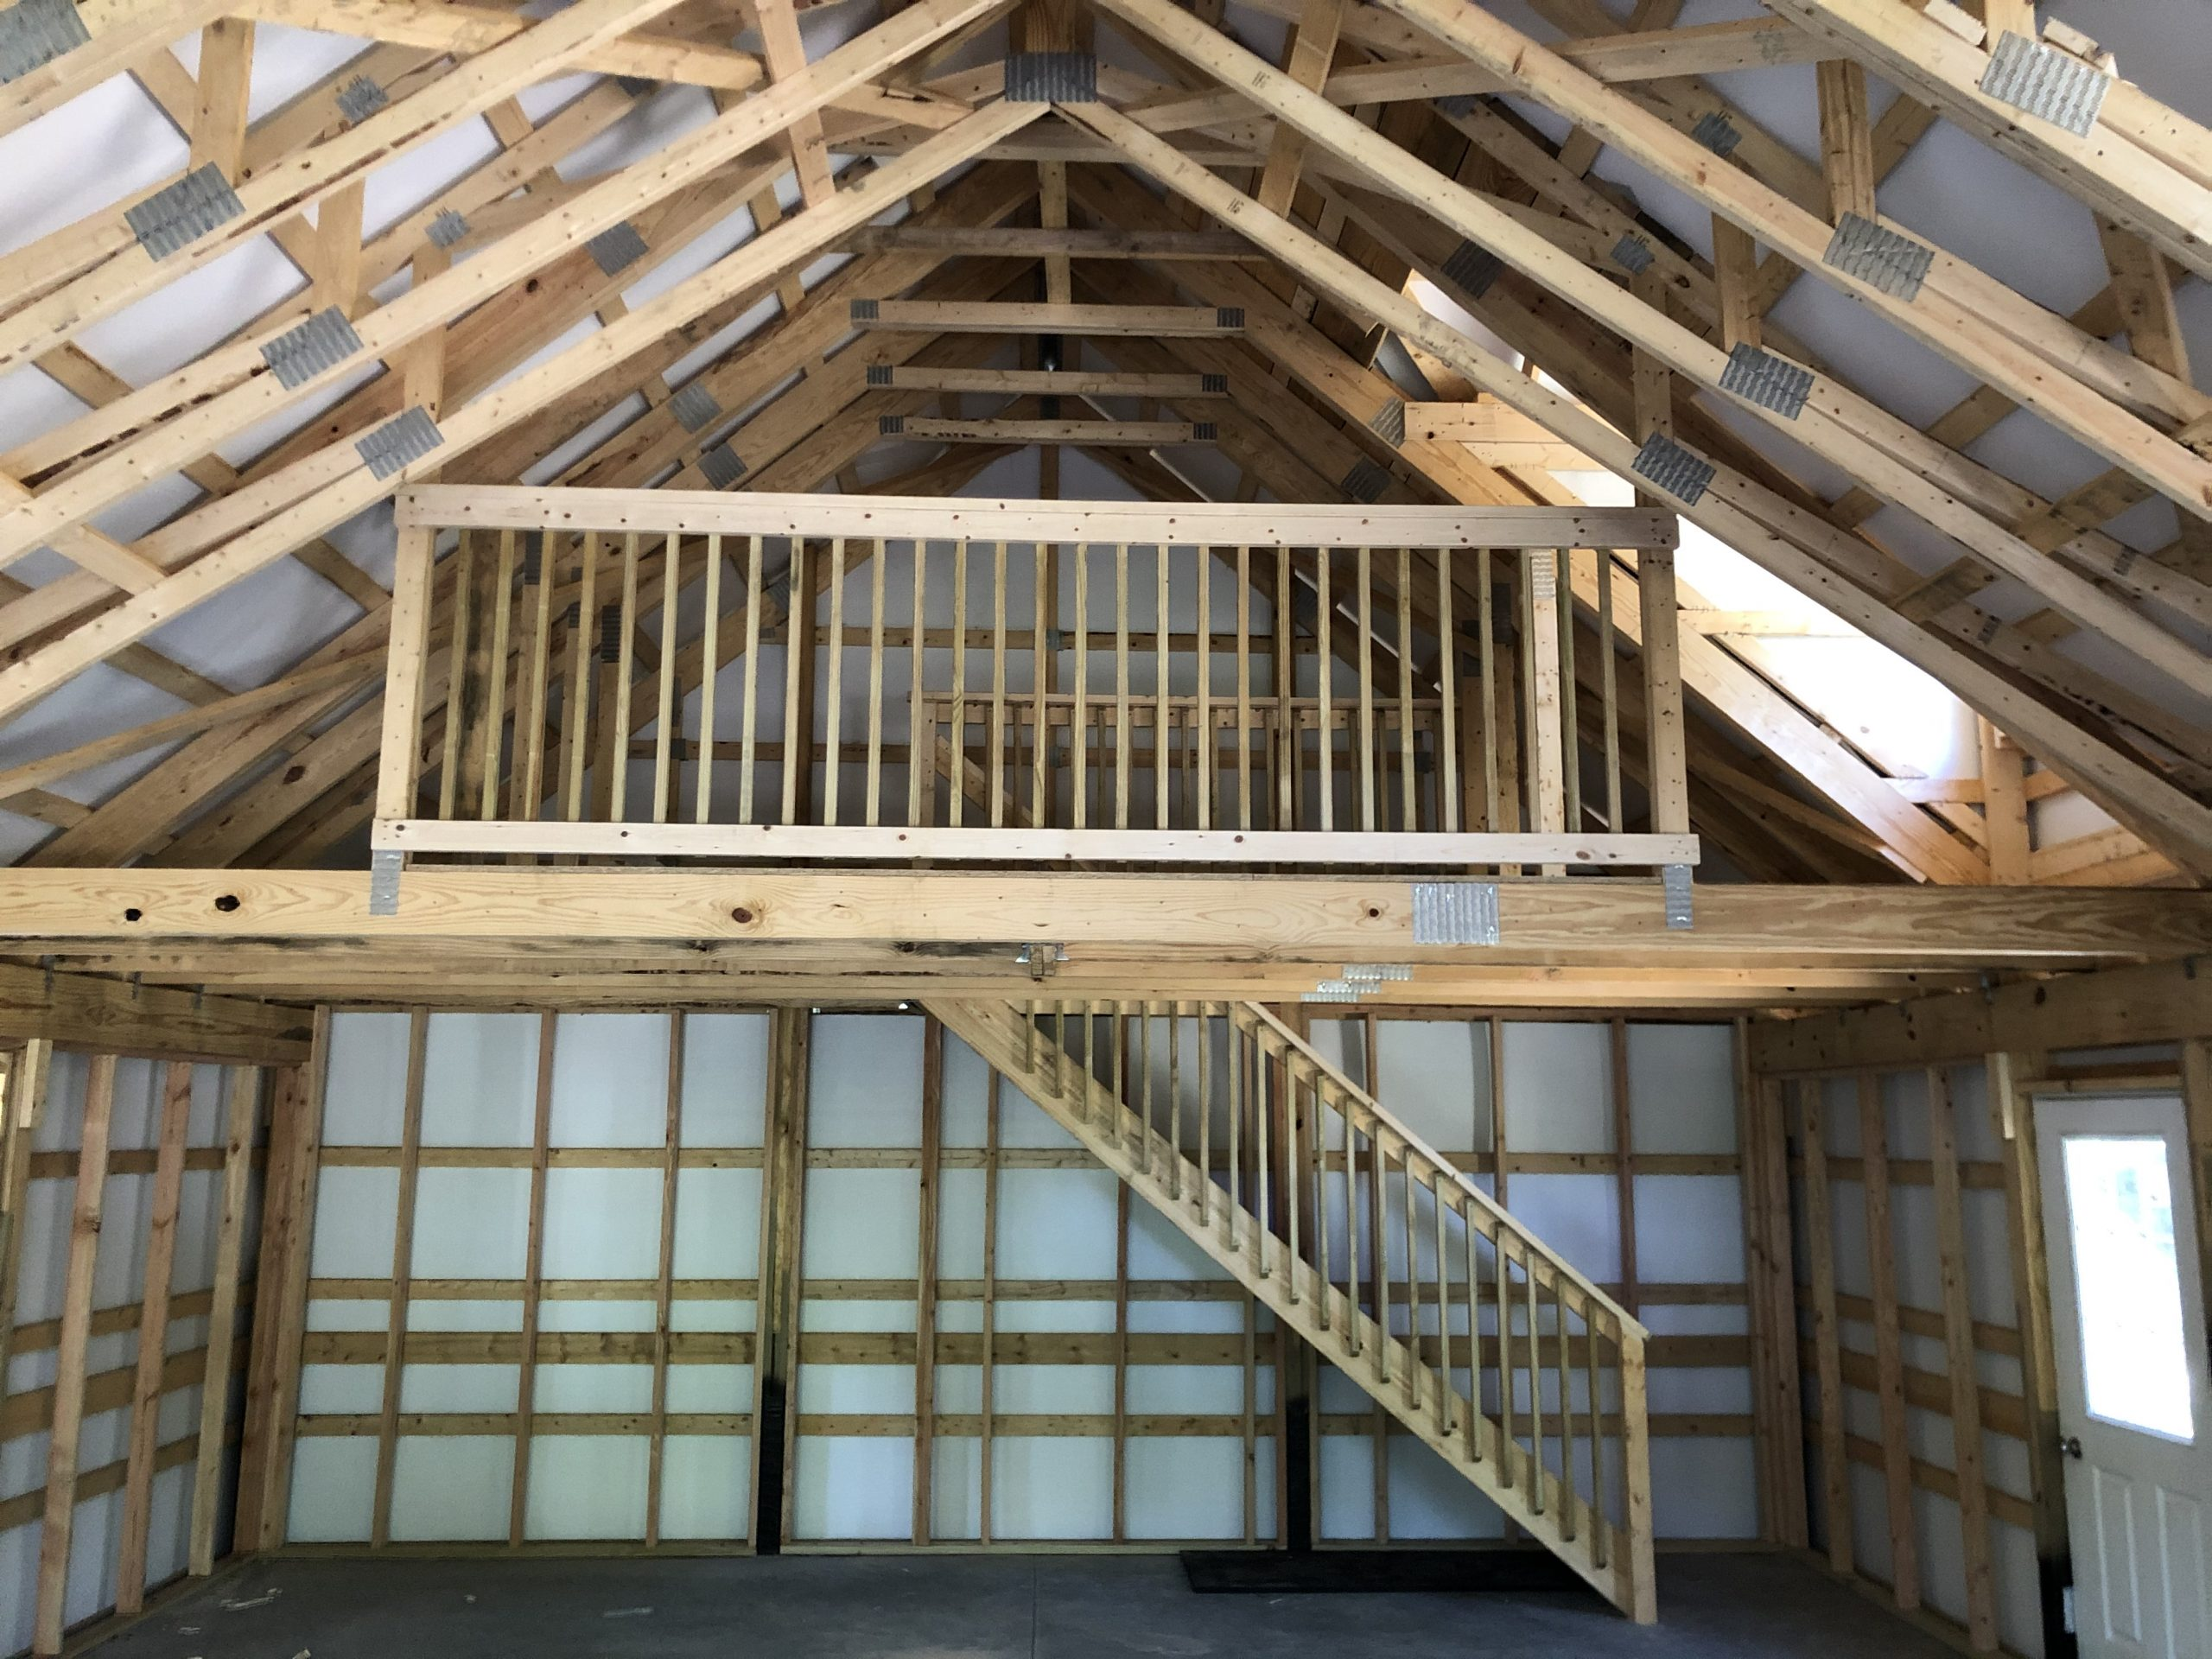 two story interior of post frame barn